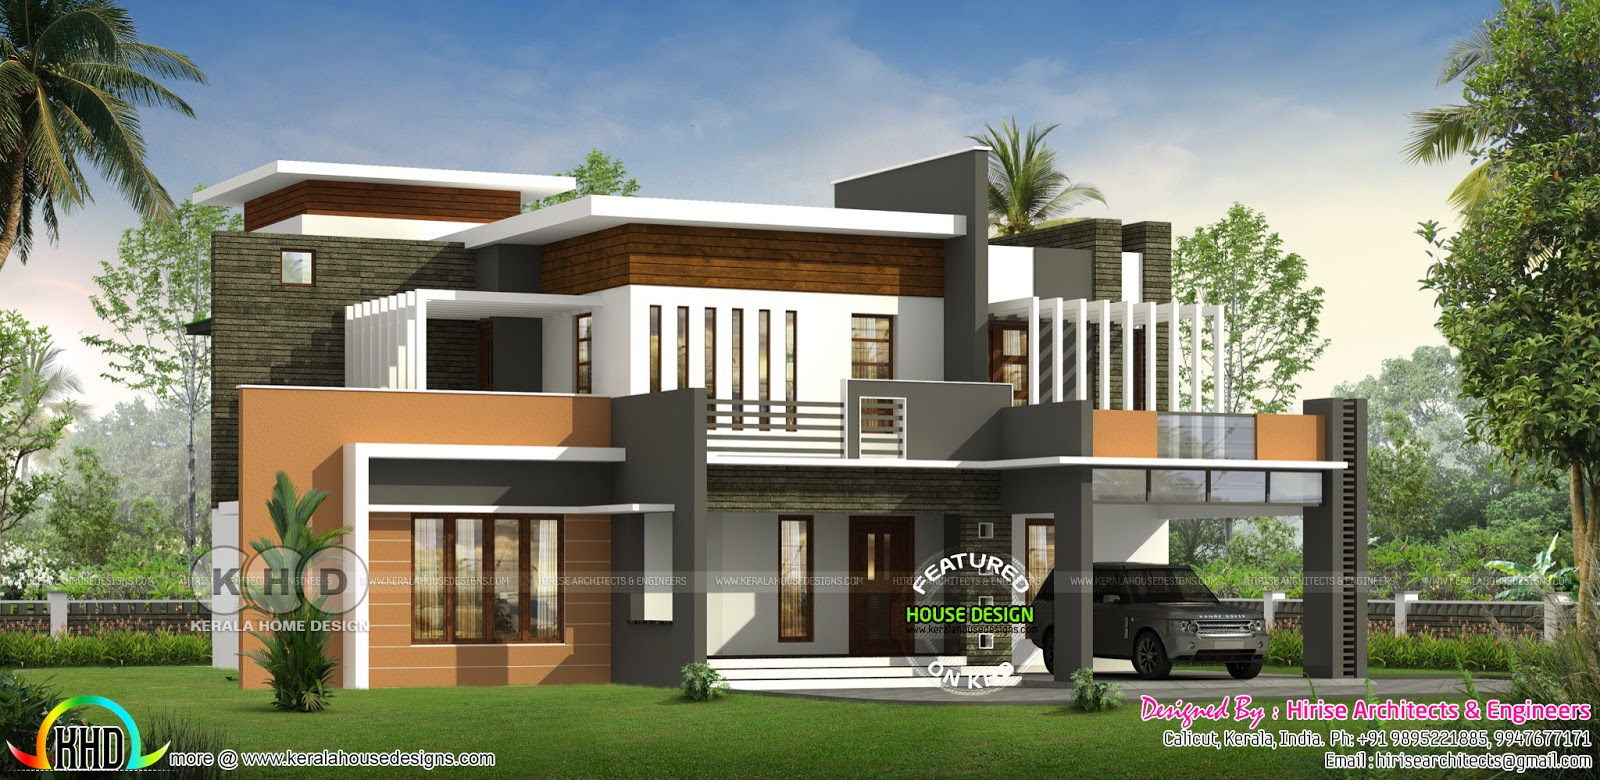 5 bhk contemporary style 3180 square feet home